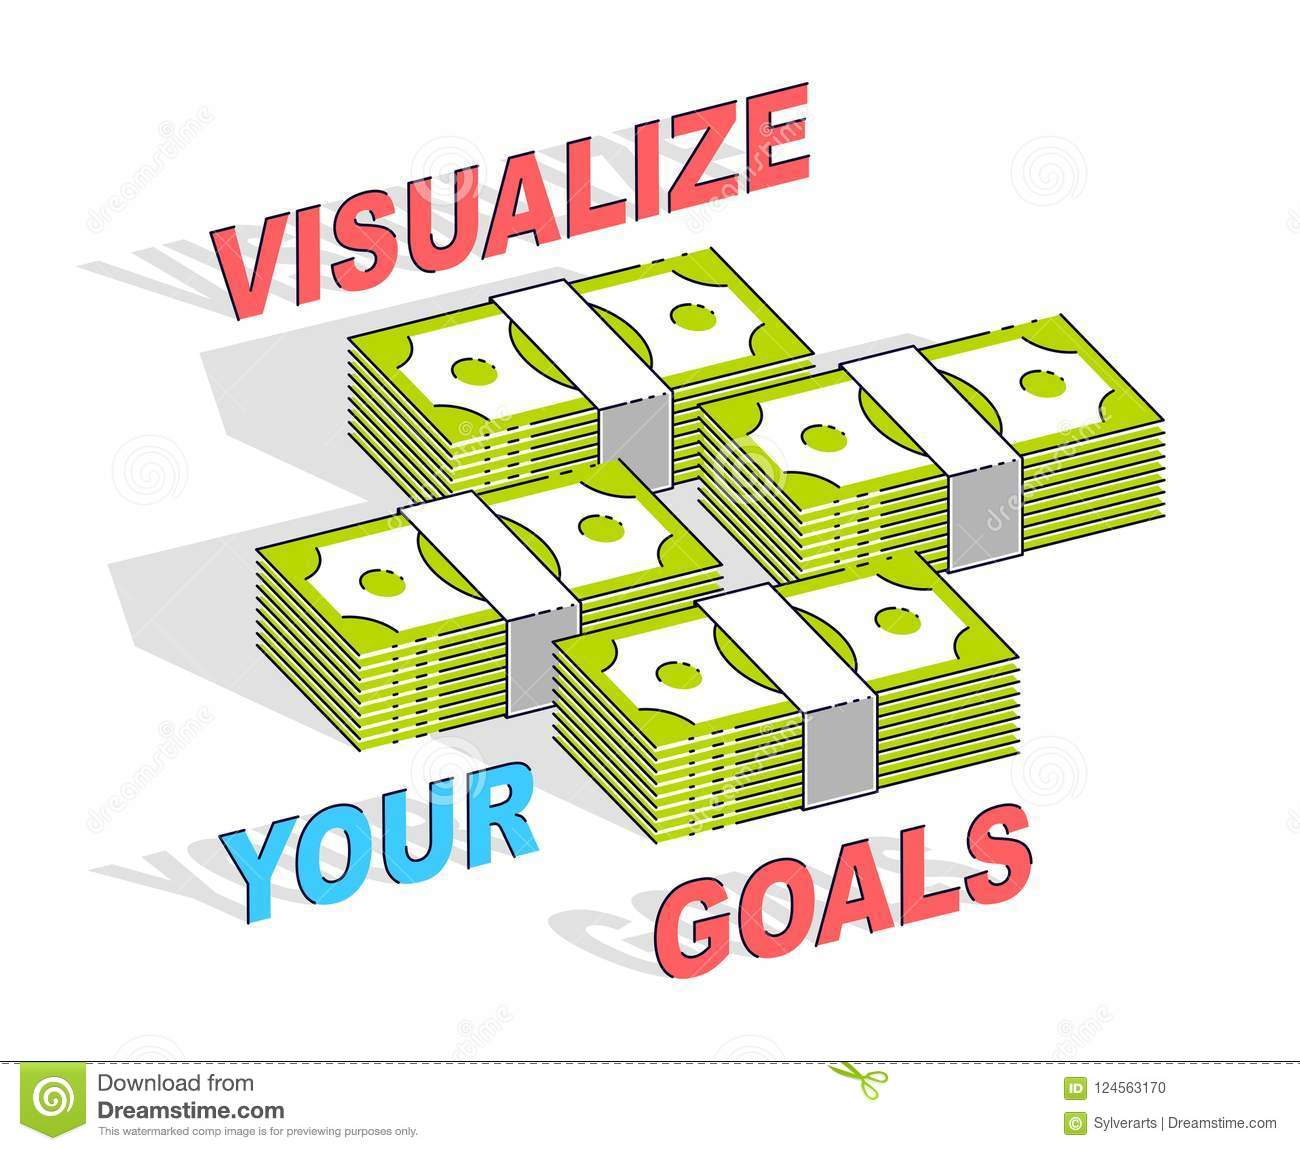 Visualize your goals business motivation poster or banner, cash